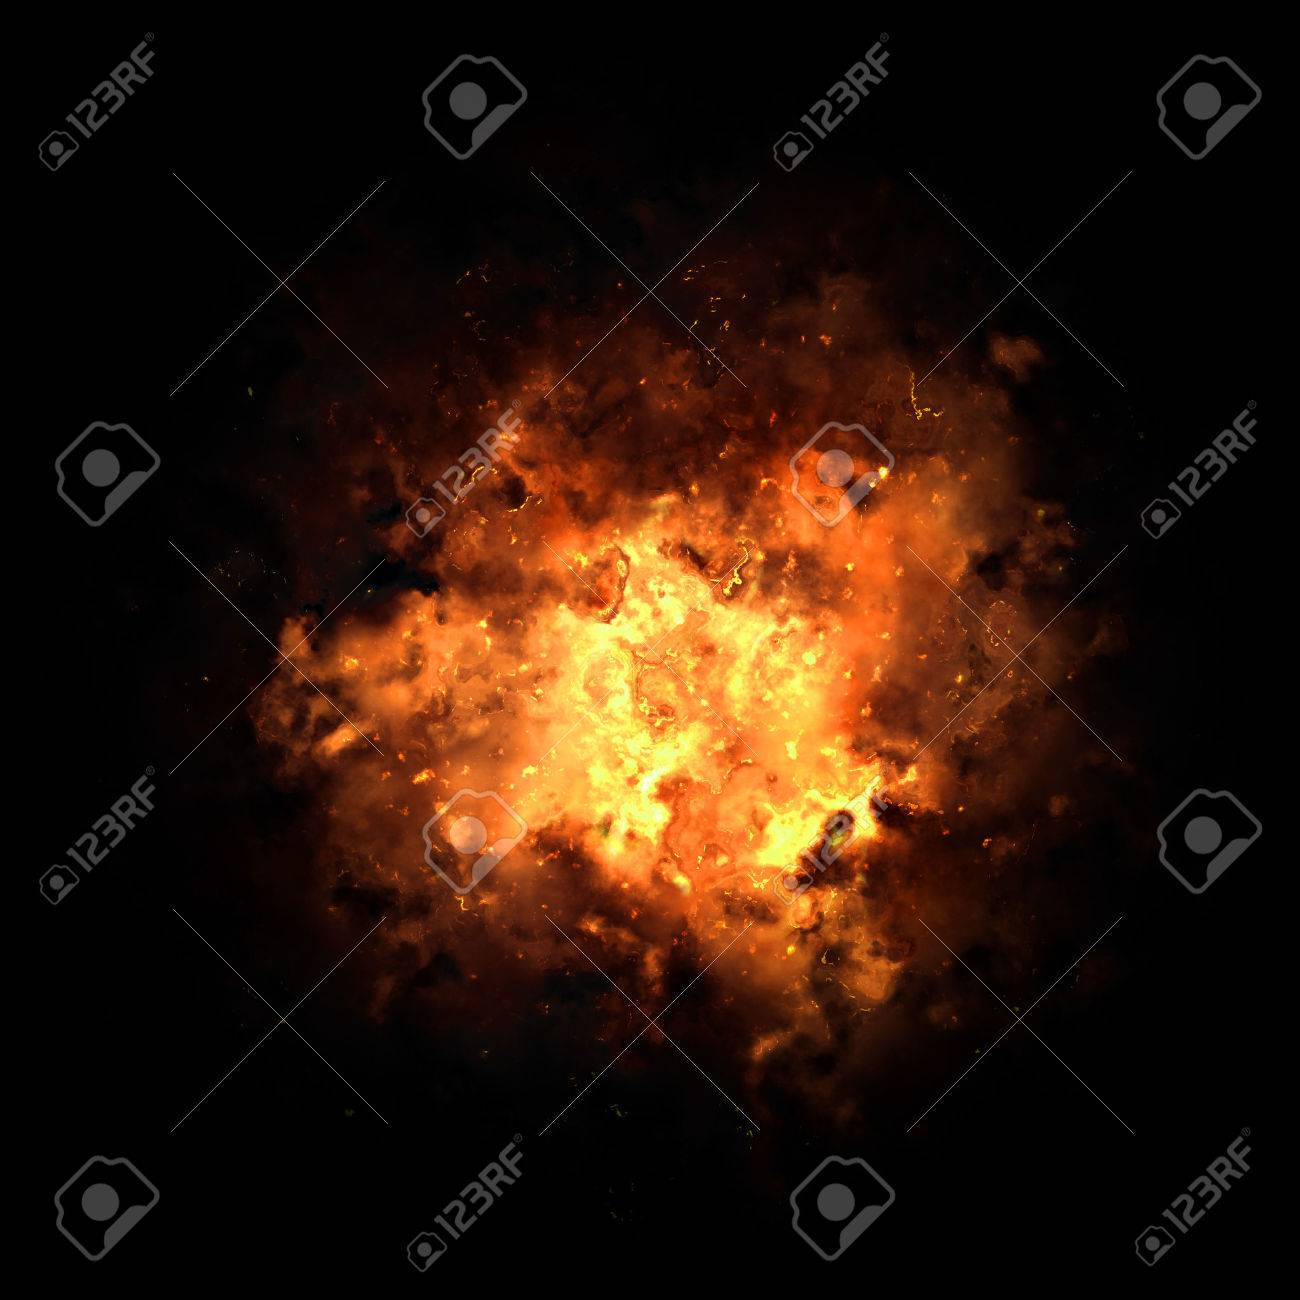 Realistic fiery explosion busting over a black background. Stock Photo - 27741854